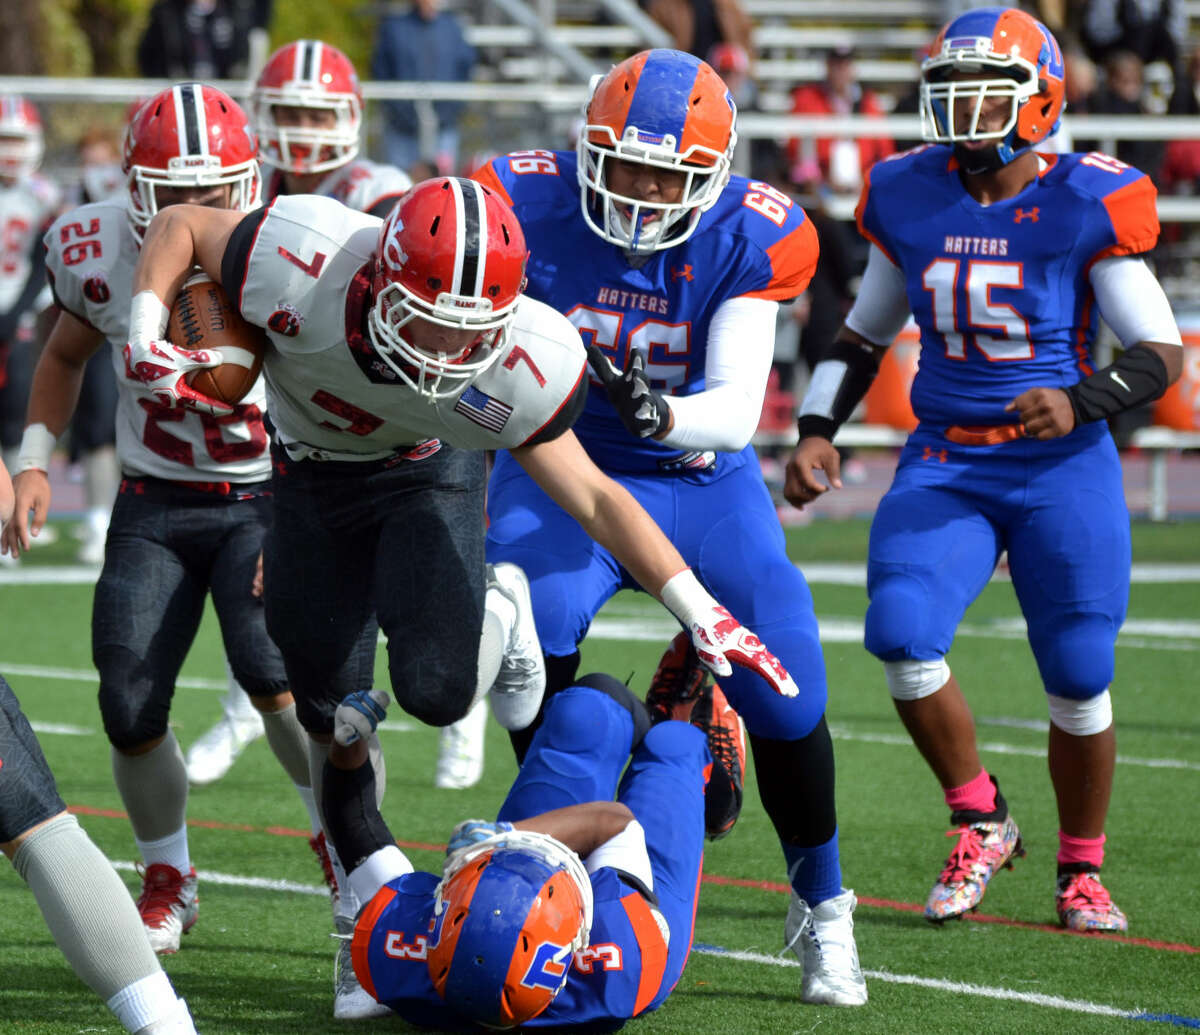 New Canaan's Ryan O'Connell runs over a Danbury defender on October 17, 2015. (Pete Paguaga/Hour photo)